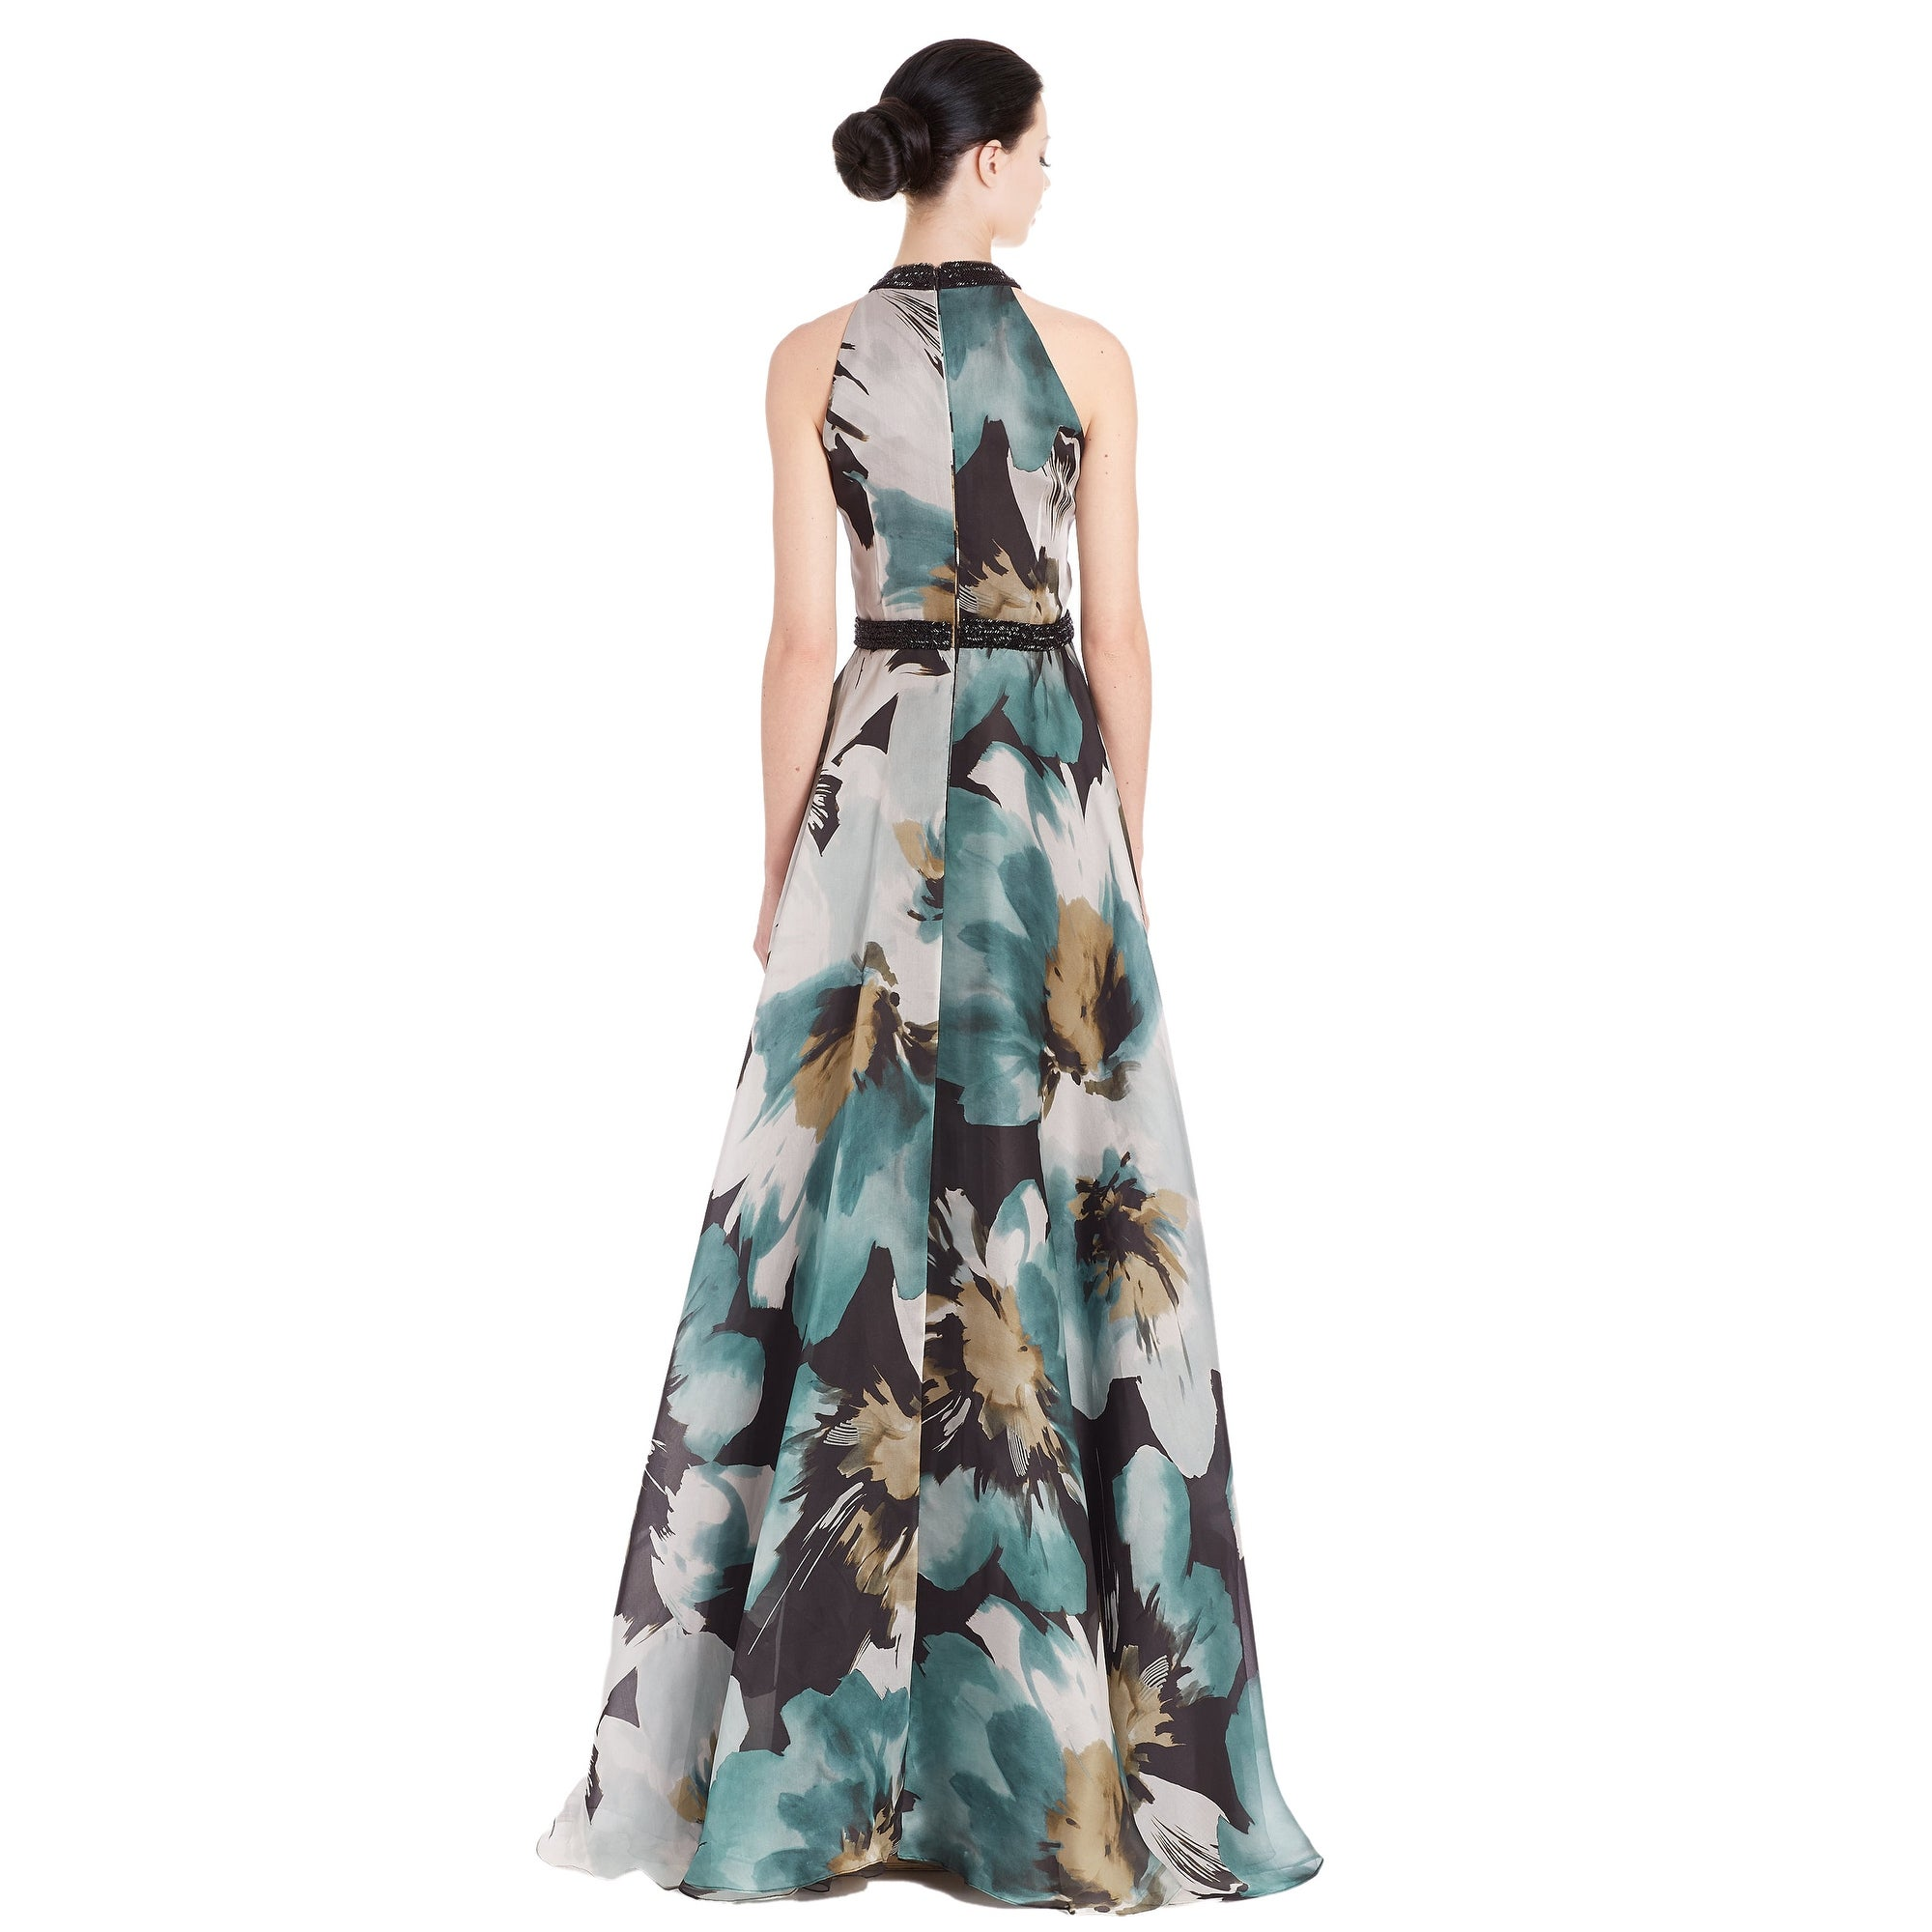 88a4049d85b00 Shop Carmen Marc Valvo Embellished Floral Silk Organza Evening Gown Dress -  14 - Free Shipping Today - Overstock - 18610497